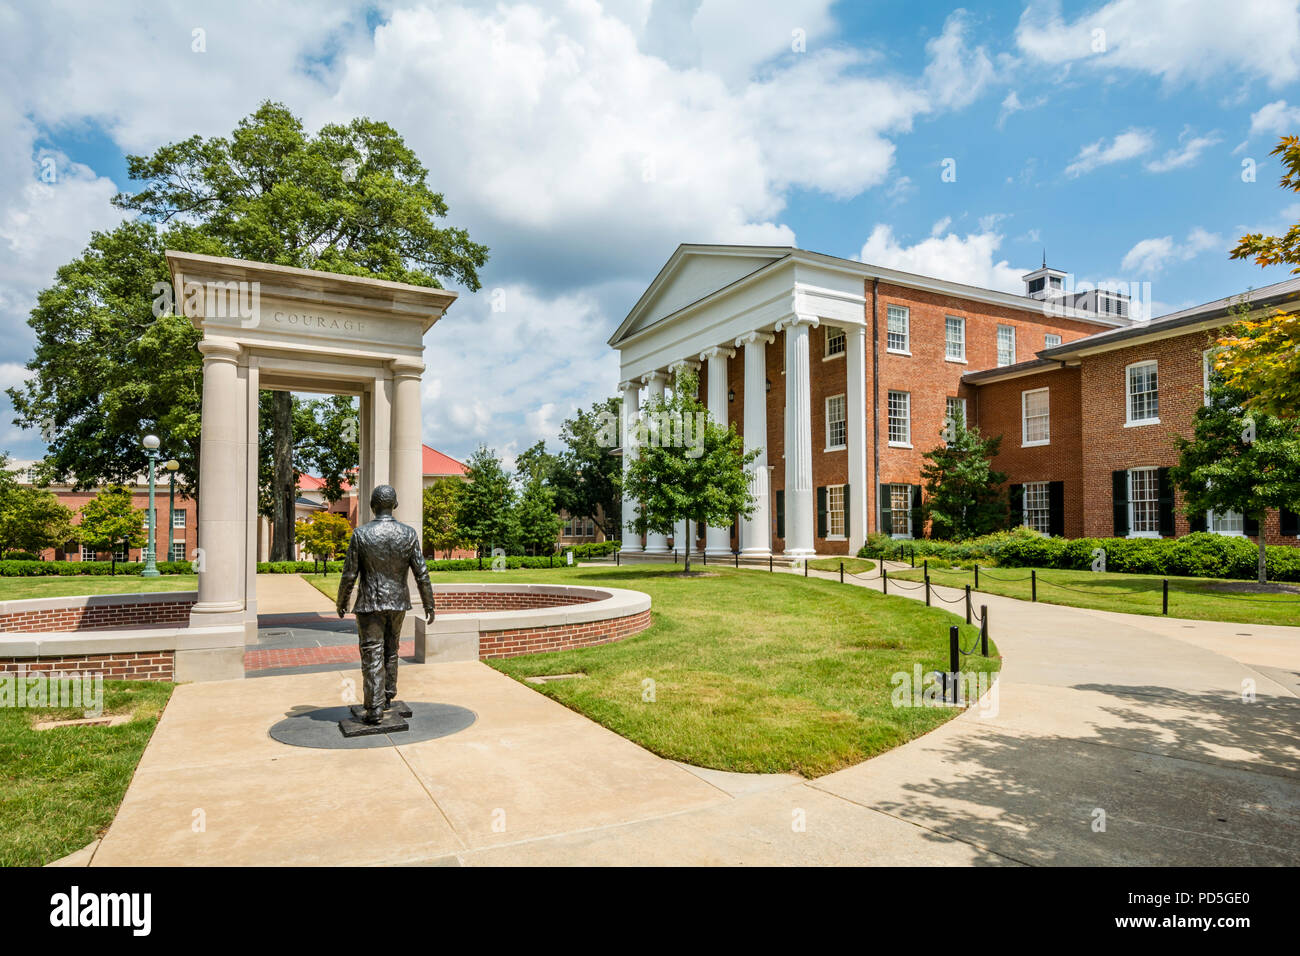 Civil Rights monument  honoring James Meredith at the University of Mississippi, Ole Miss, in Oxford, Mississippi, USA. - Stock Image